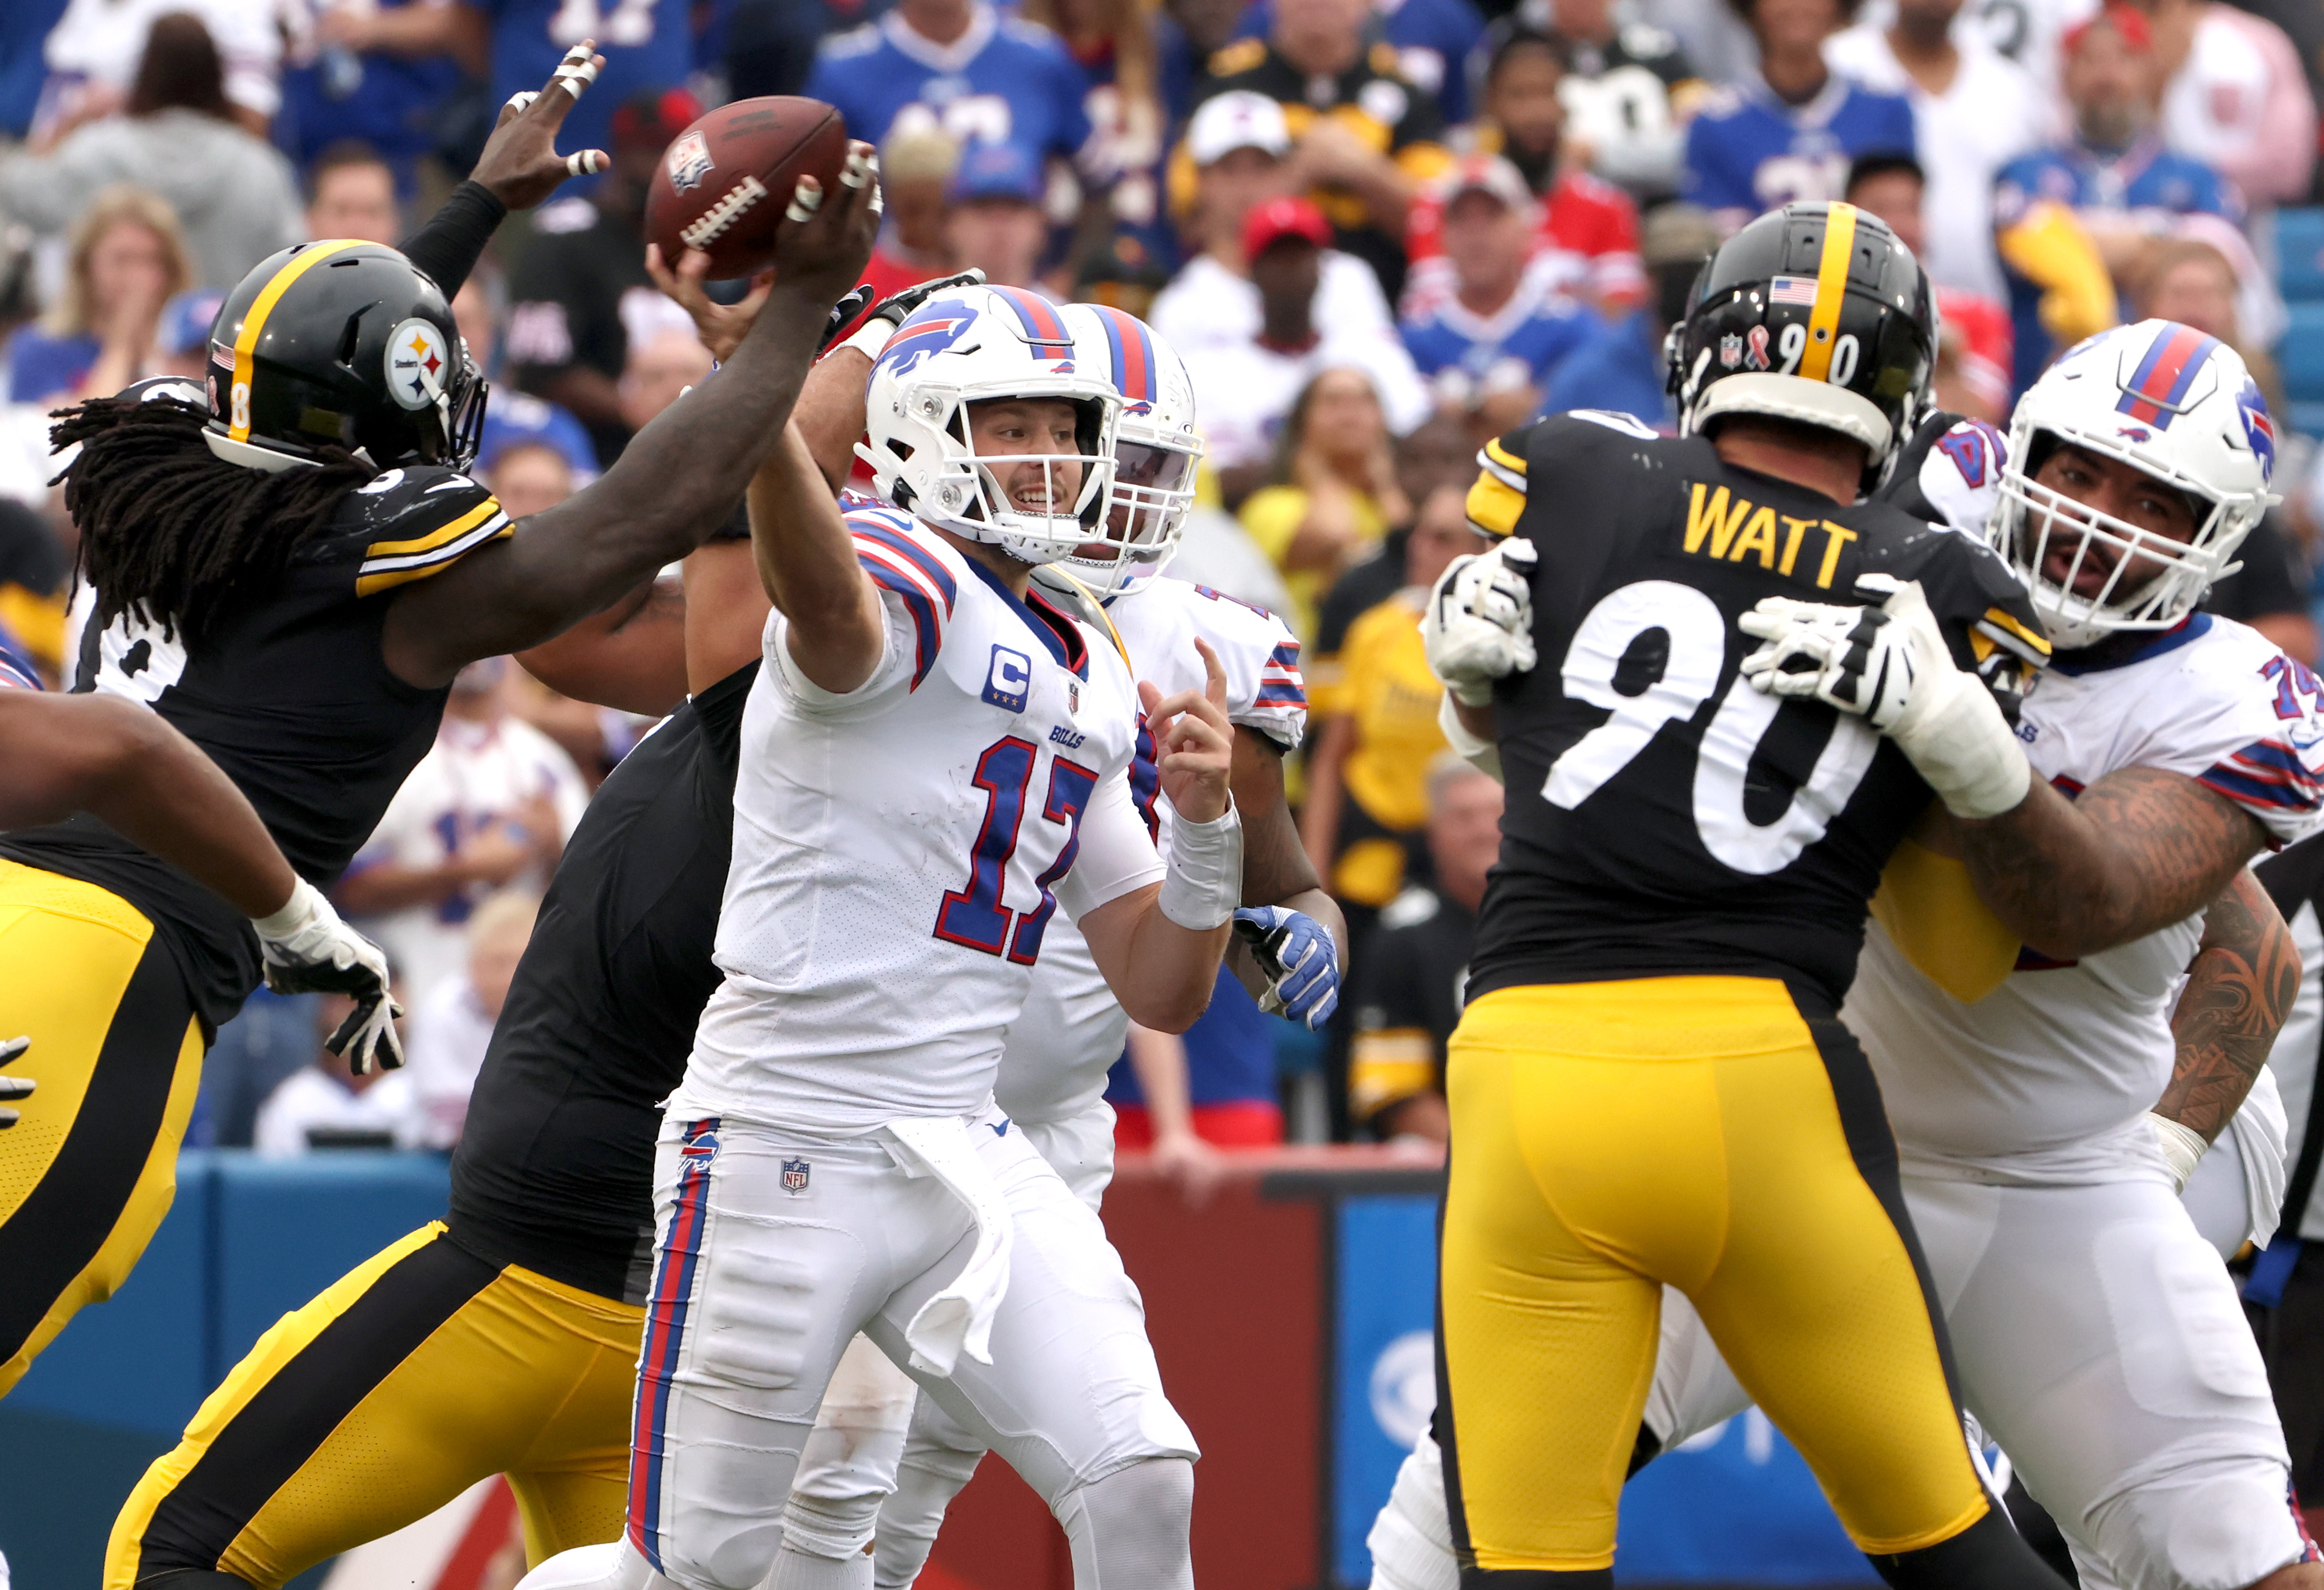 Josh Allen #17 of the Buffalo Bills throws a pass around Melvin Ingram #8 of the Pittsburgh Steelers during the fourth quarter at Highmark Stadium on September 12, 2021 in Orchard Park, New York.